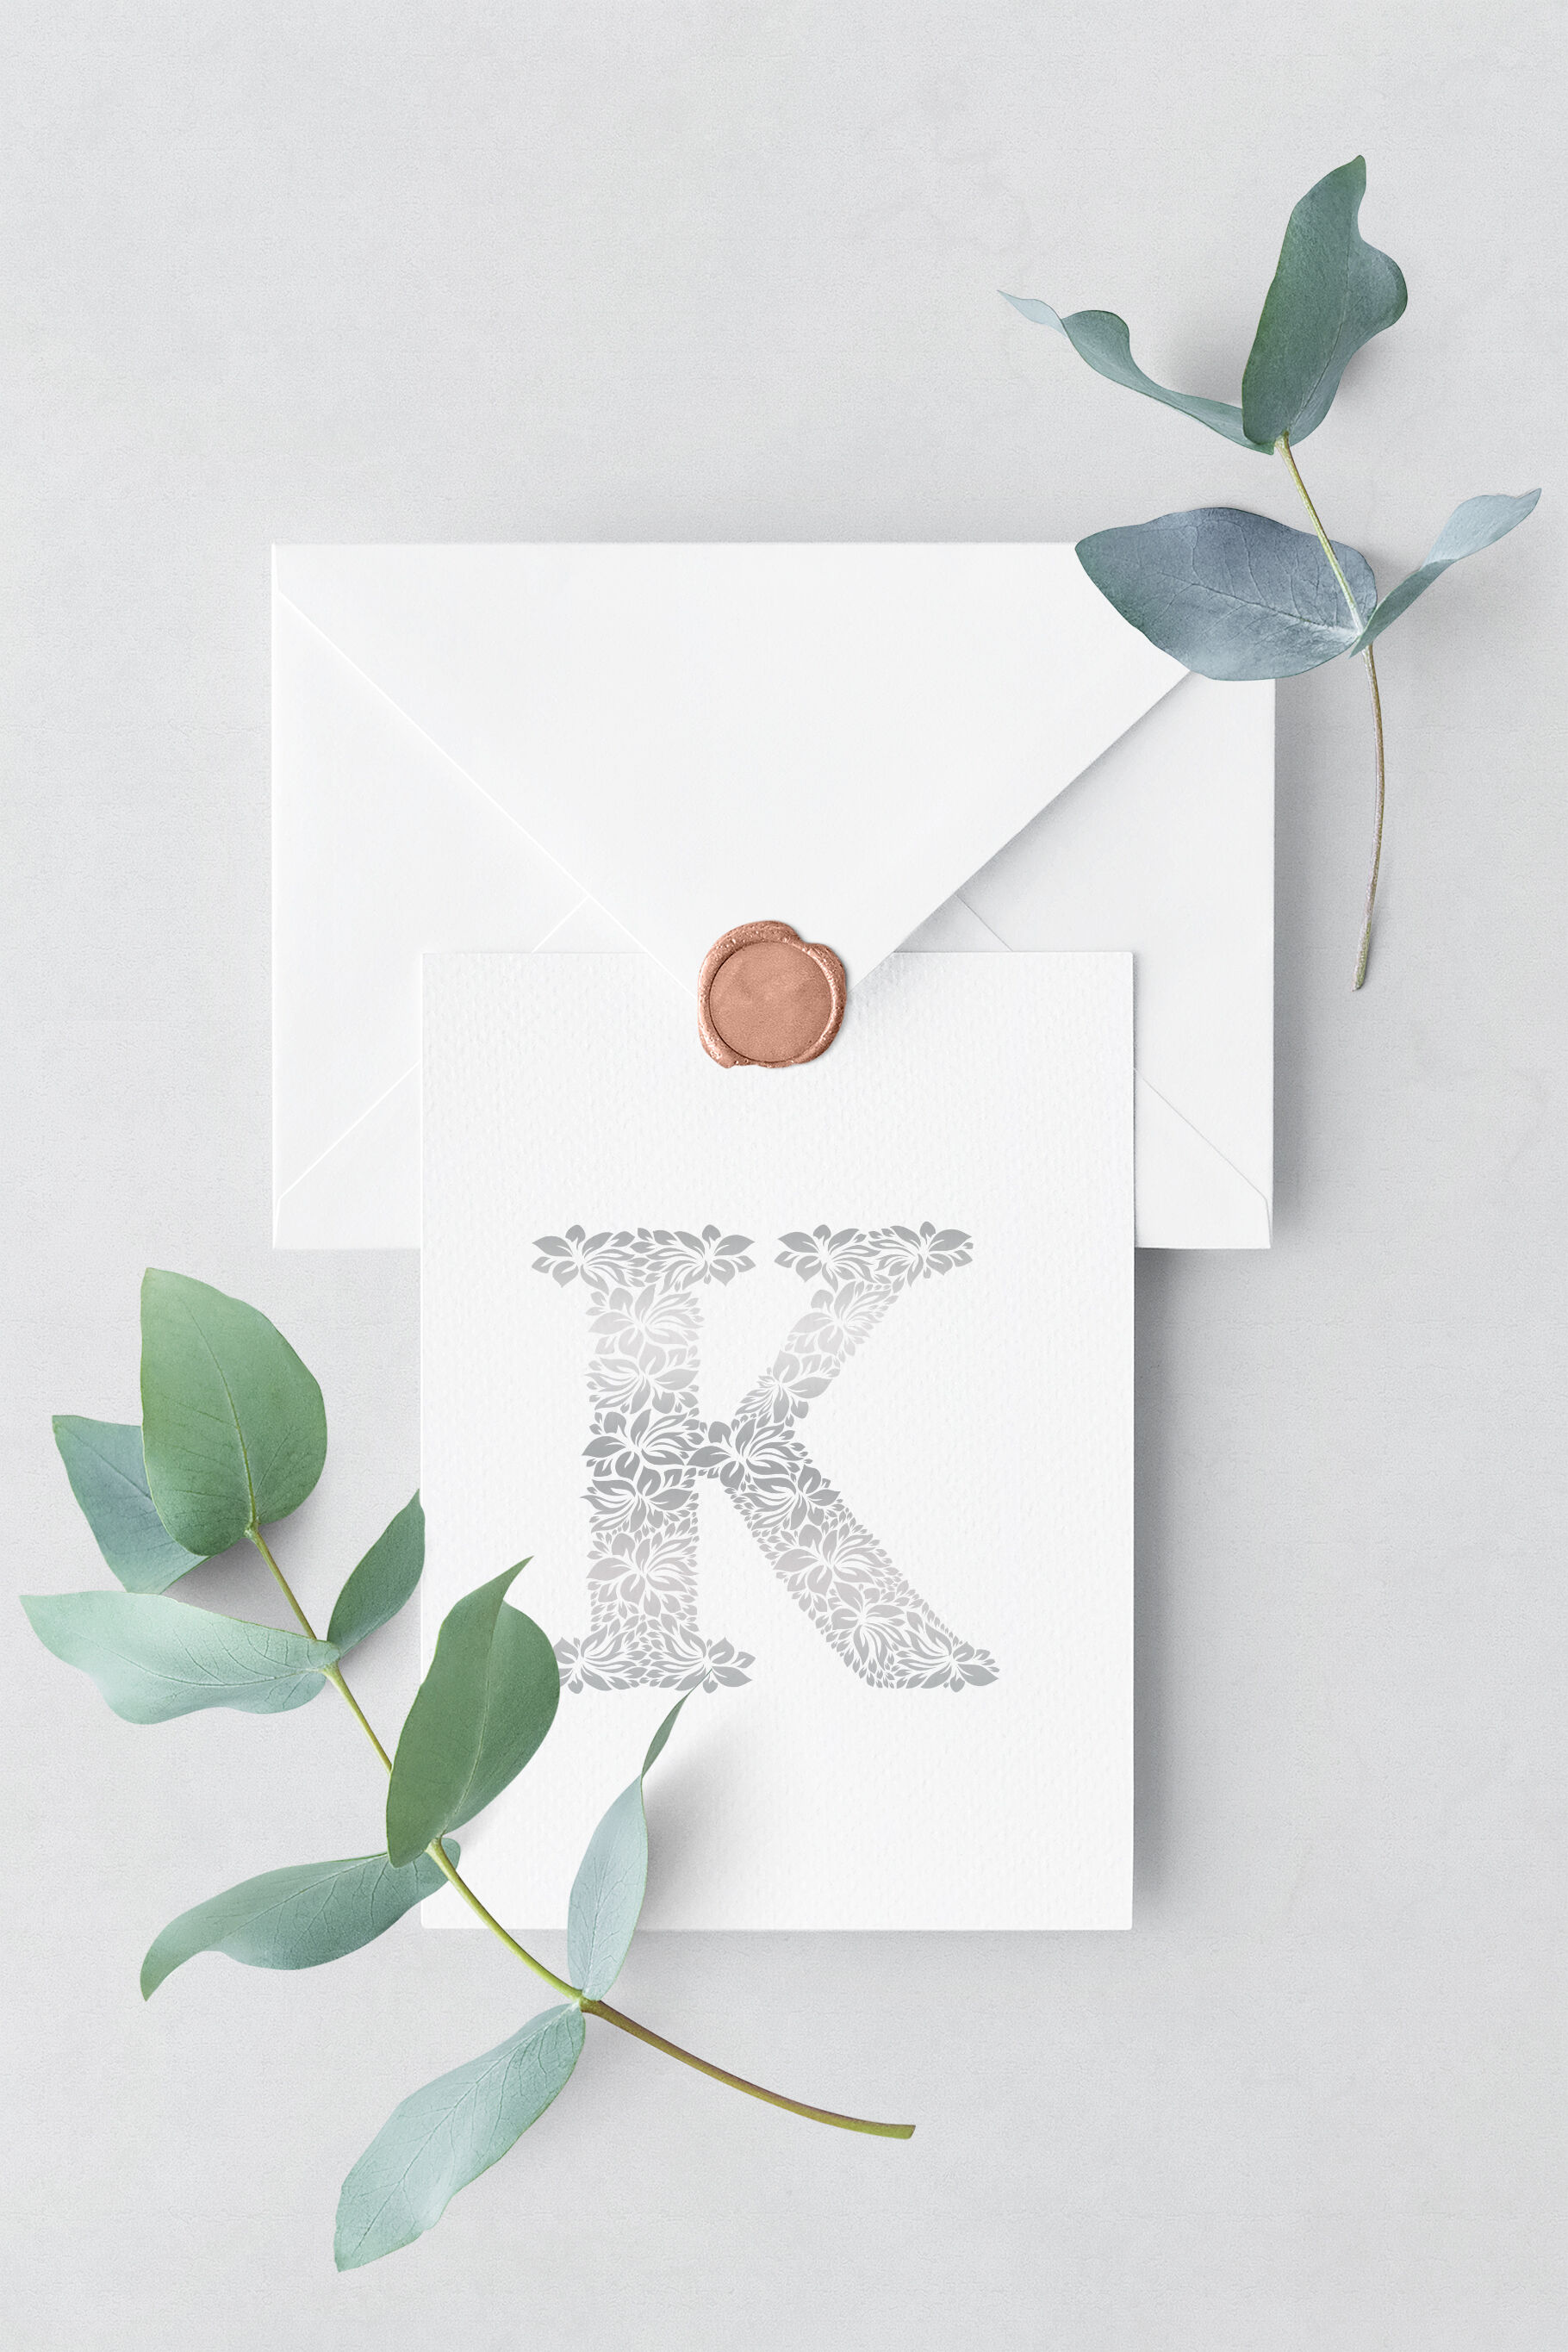 Letter K Floral Logo Template By Textures Overlays Store